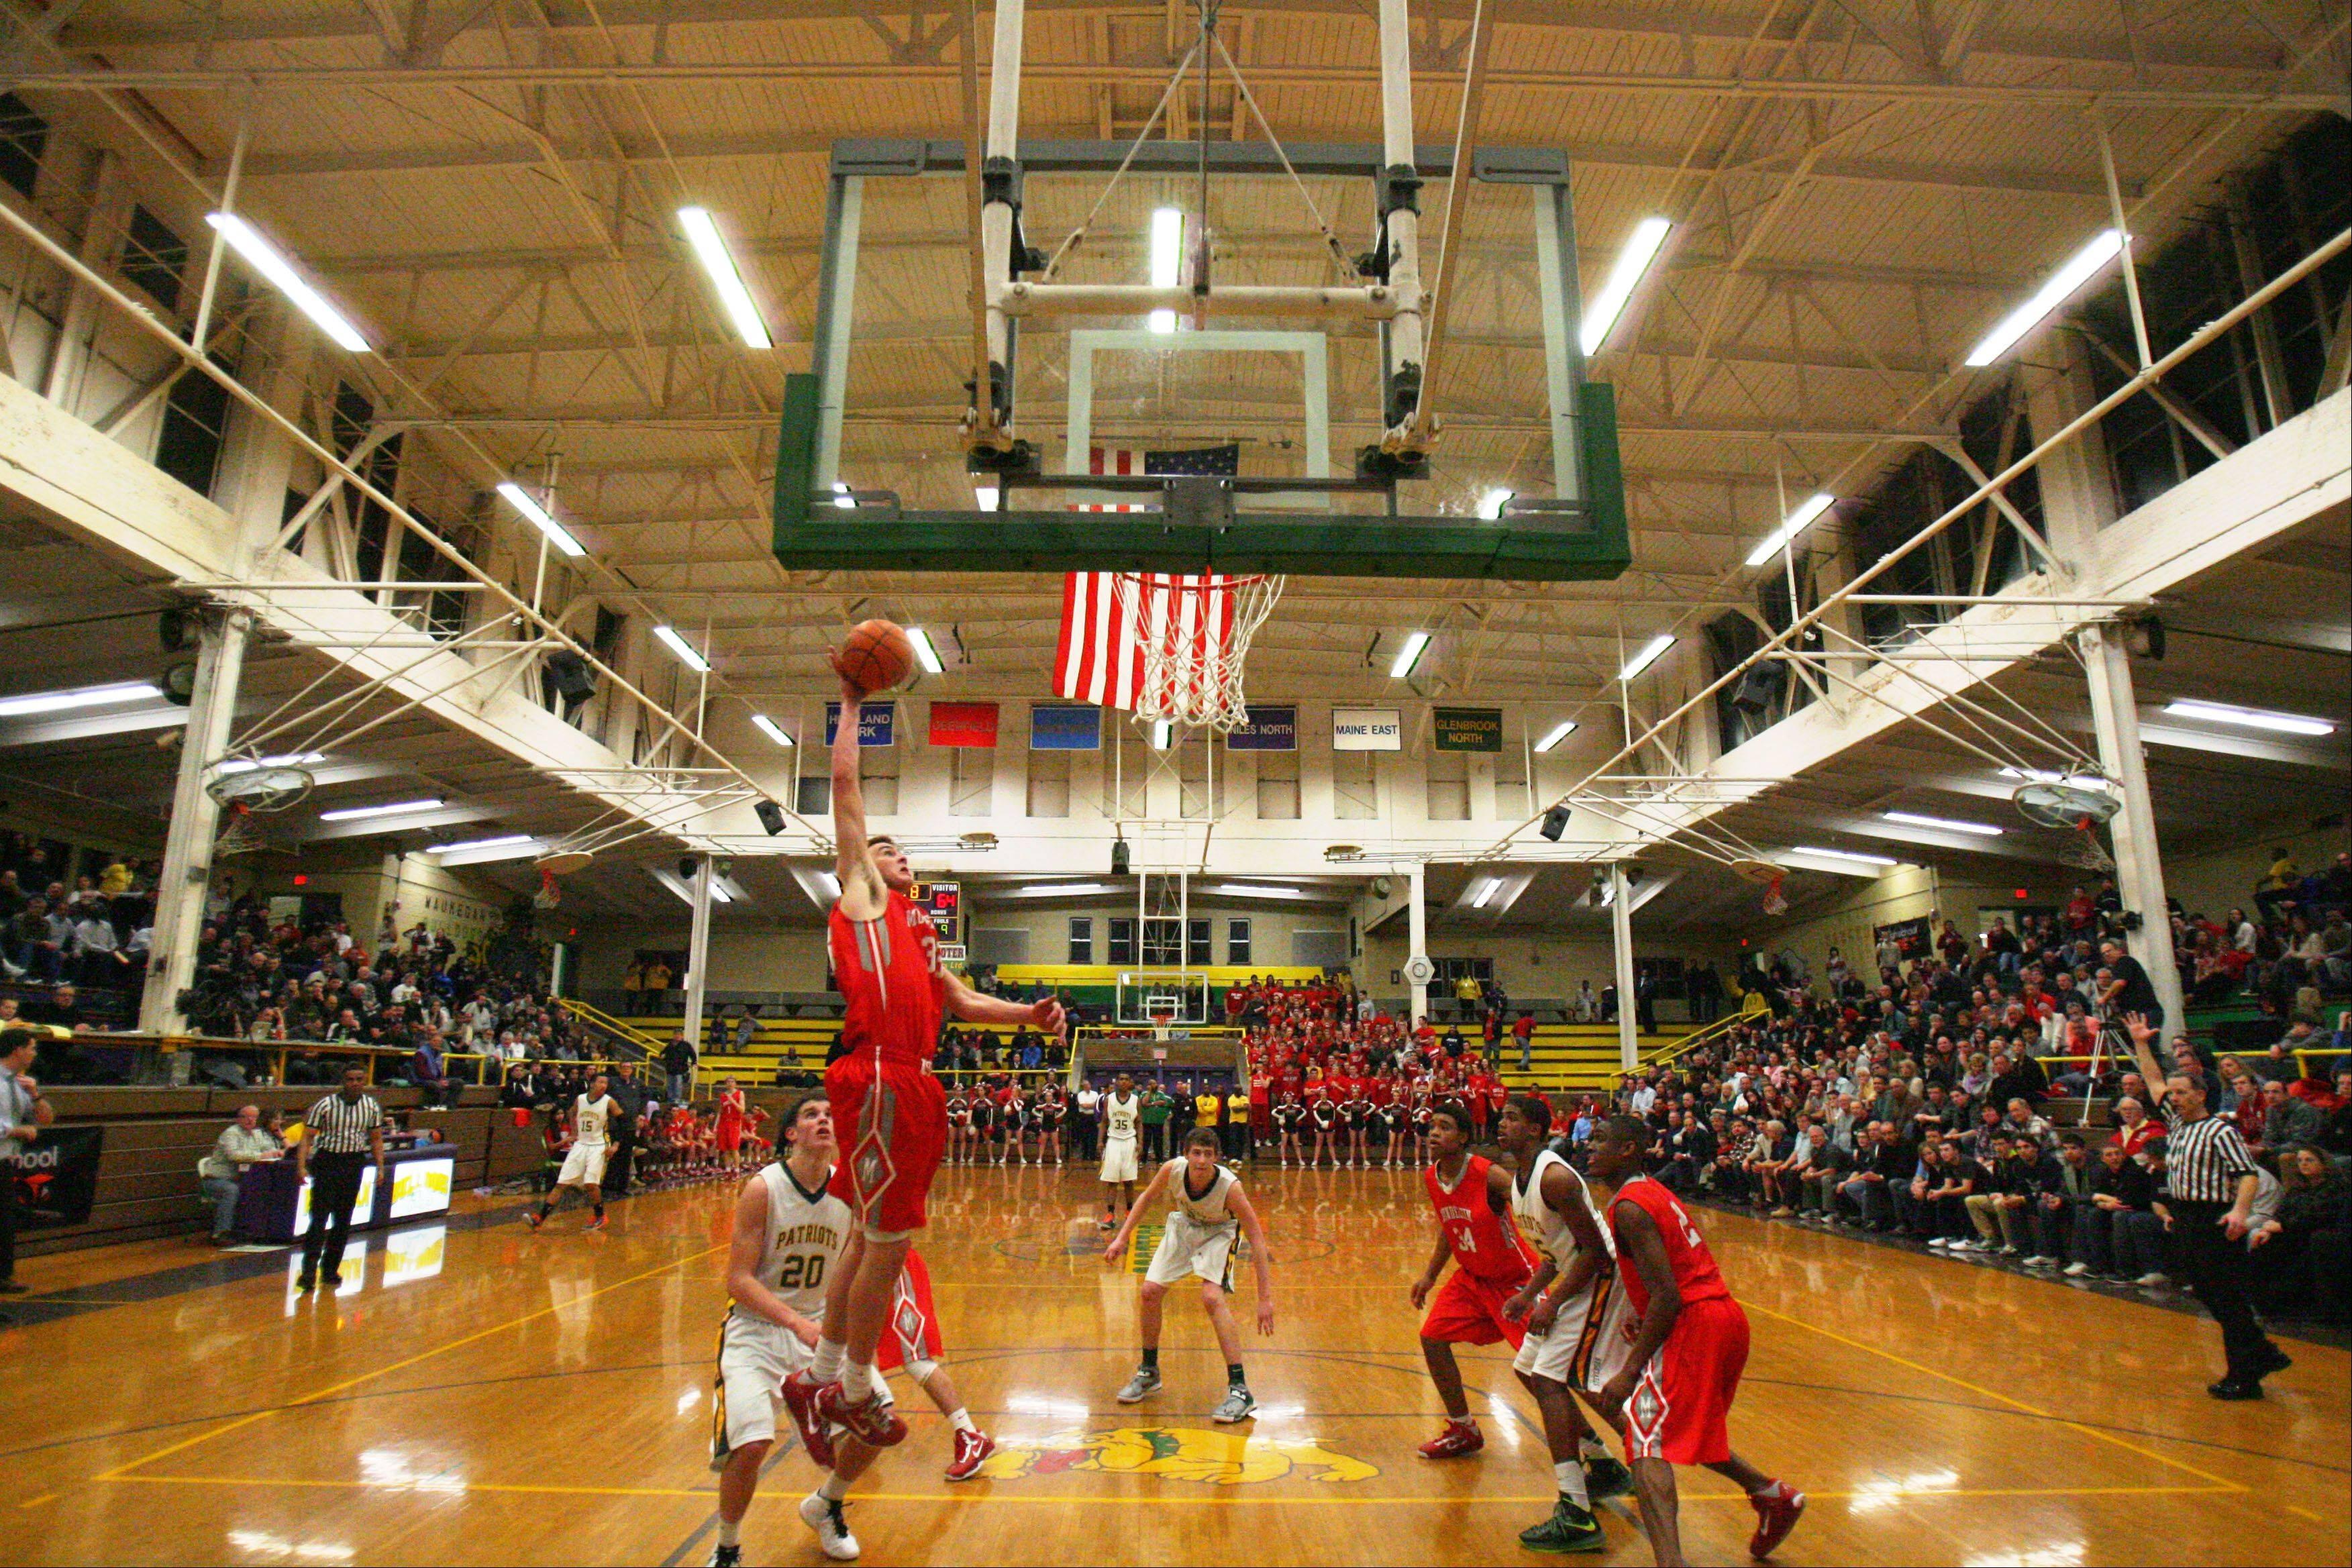 Images from the Stevenson Patriots vs. the Mundelein Mustangs in the Class 4A Waukegan sectional semifinal boys basketball game on Wednesday, March 6 at Waukegan High School.